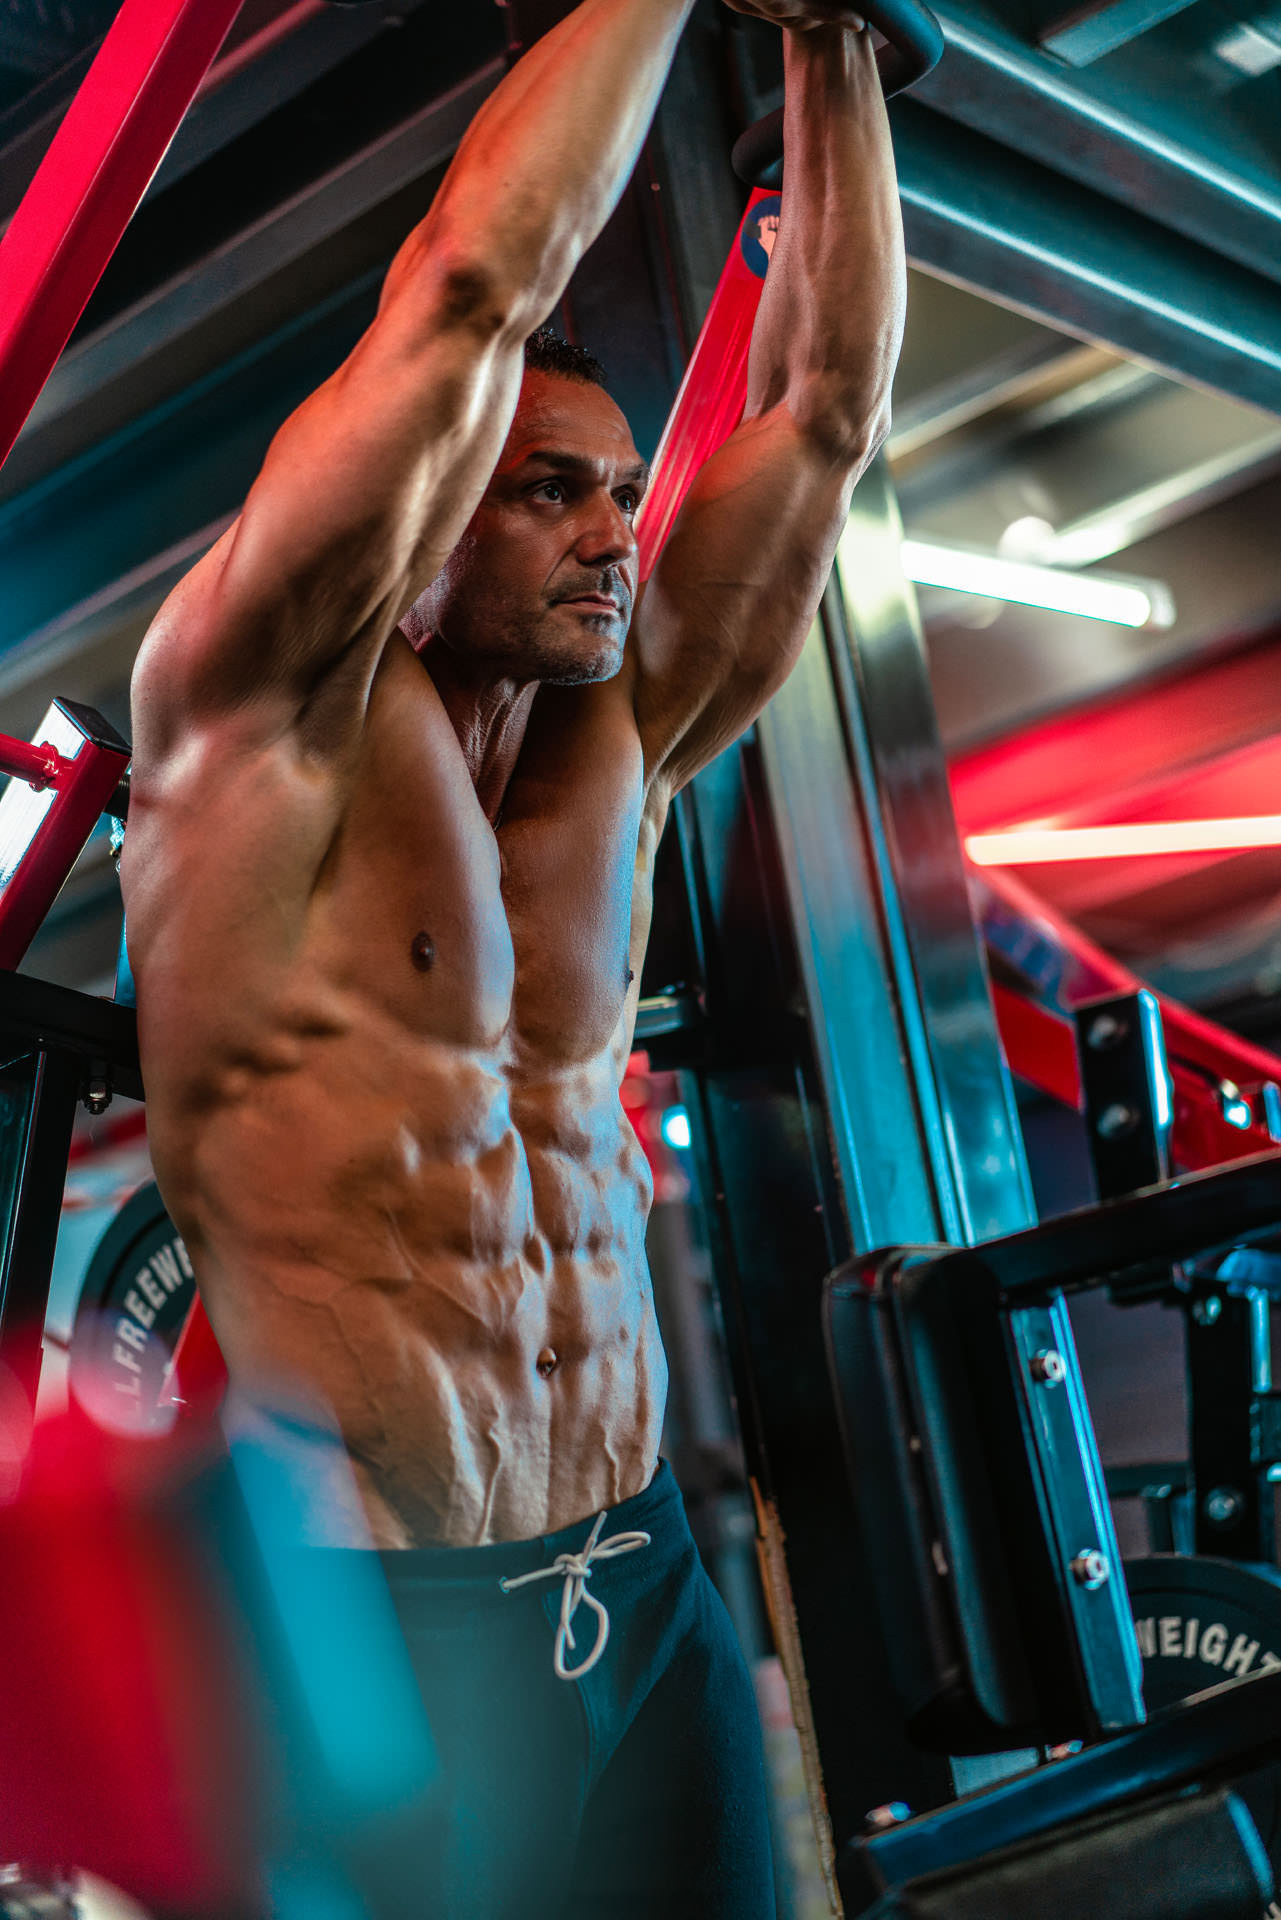 2020-03-15 - Enzo - Muscle Factory - 01587 - 1920px